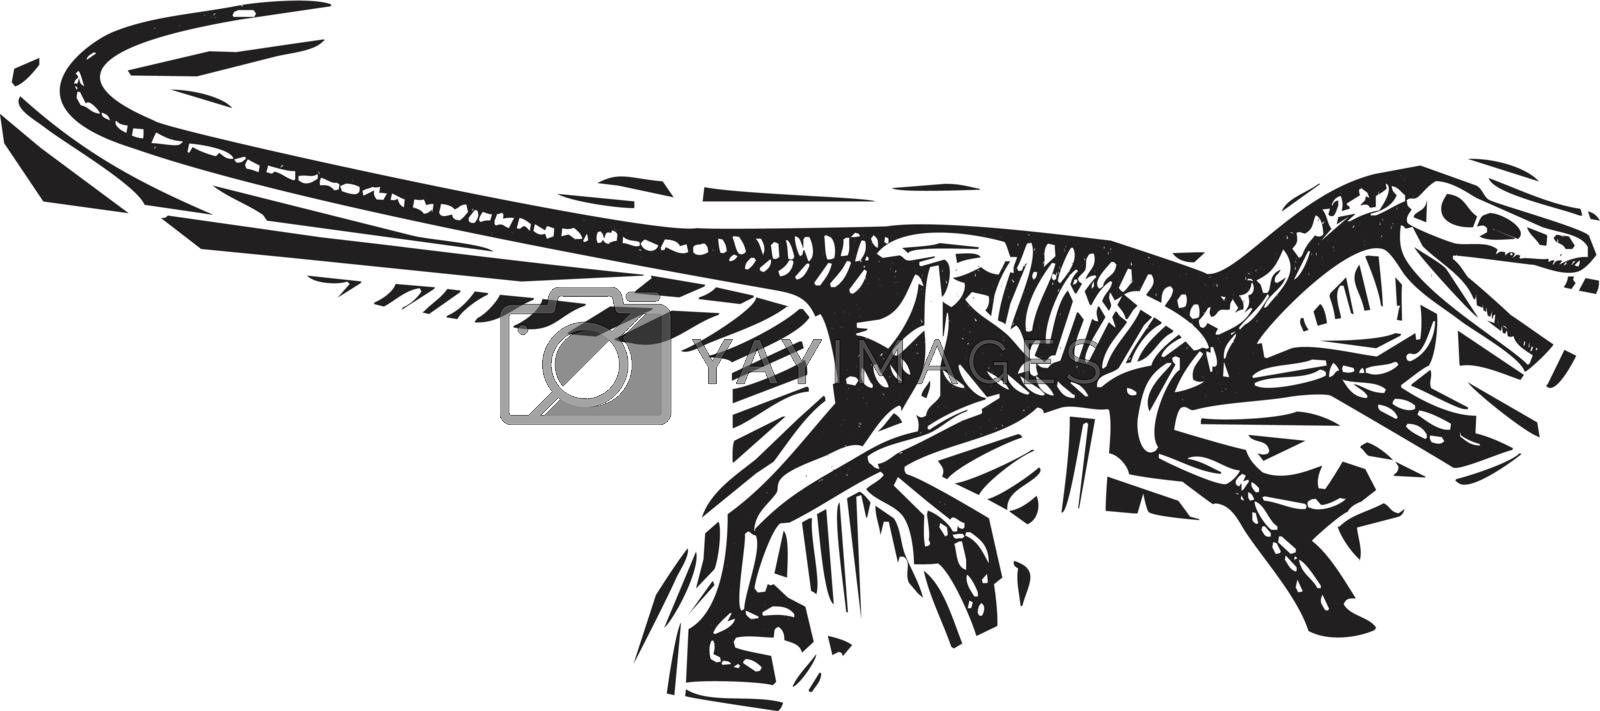 Woodcut style image of a fossil of a running Velociraptor dinosaur